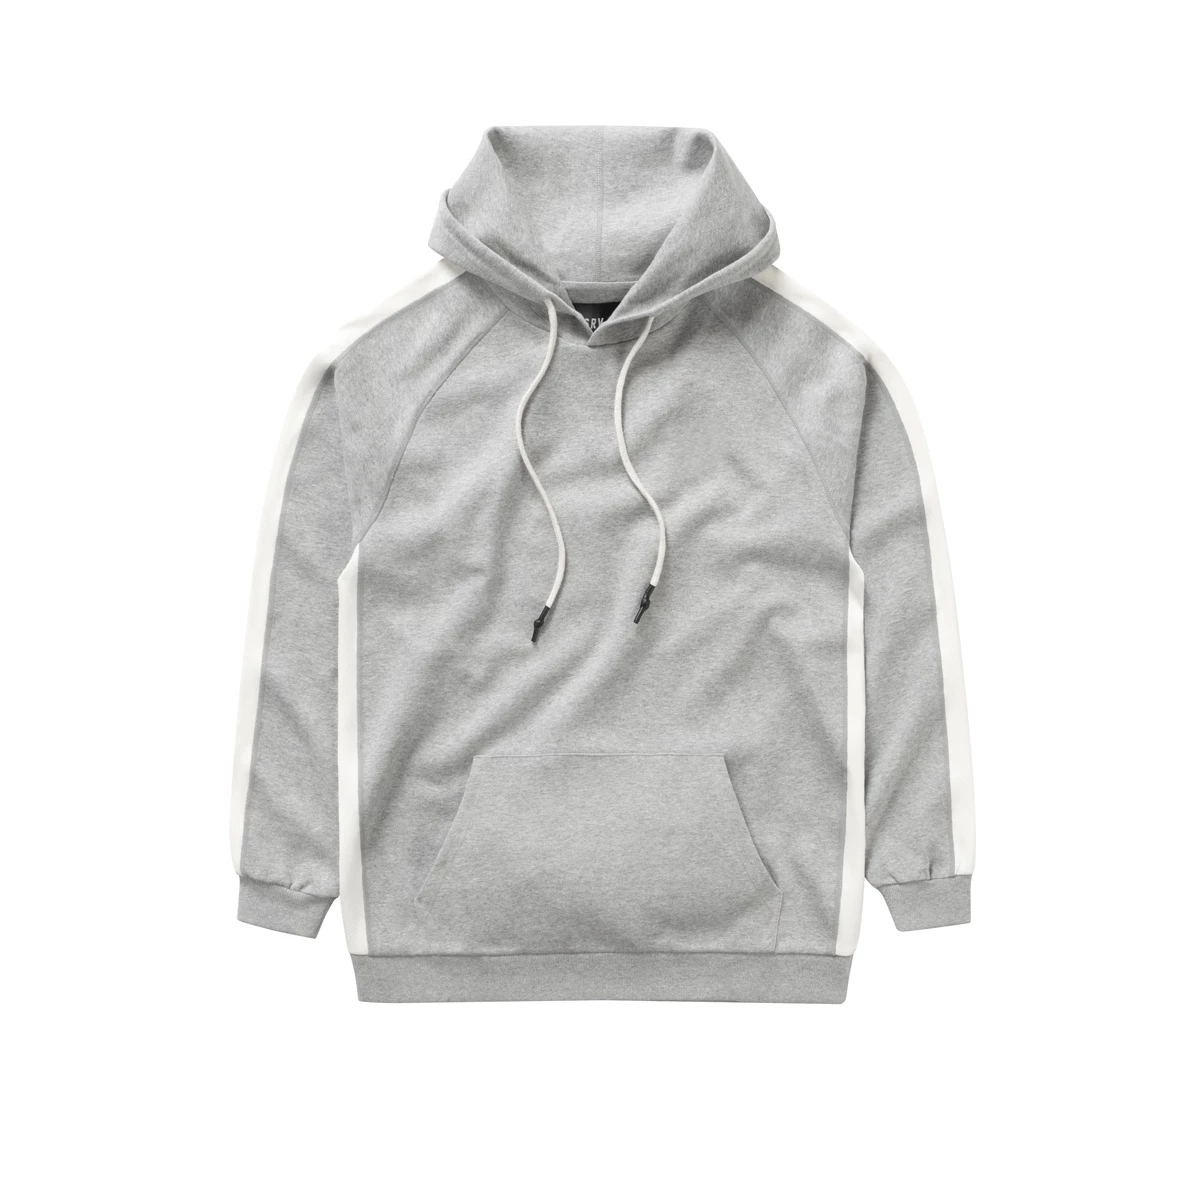 Top nice hoodies for men factory for female-2